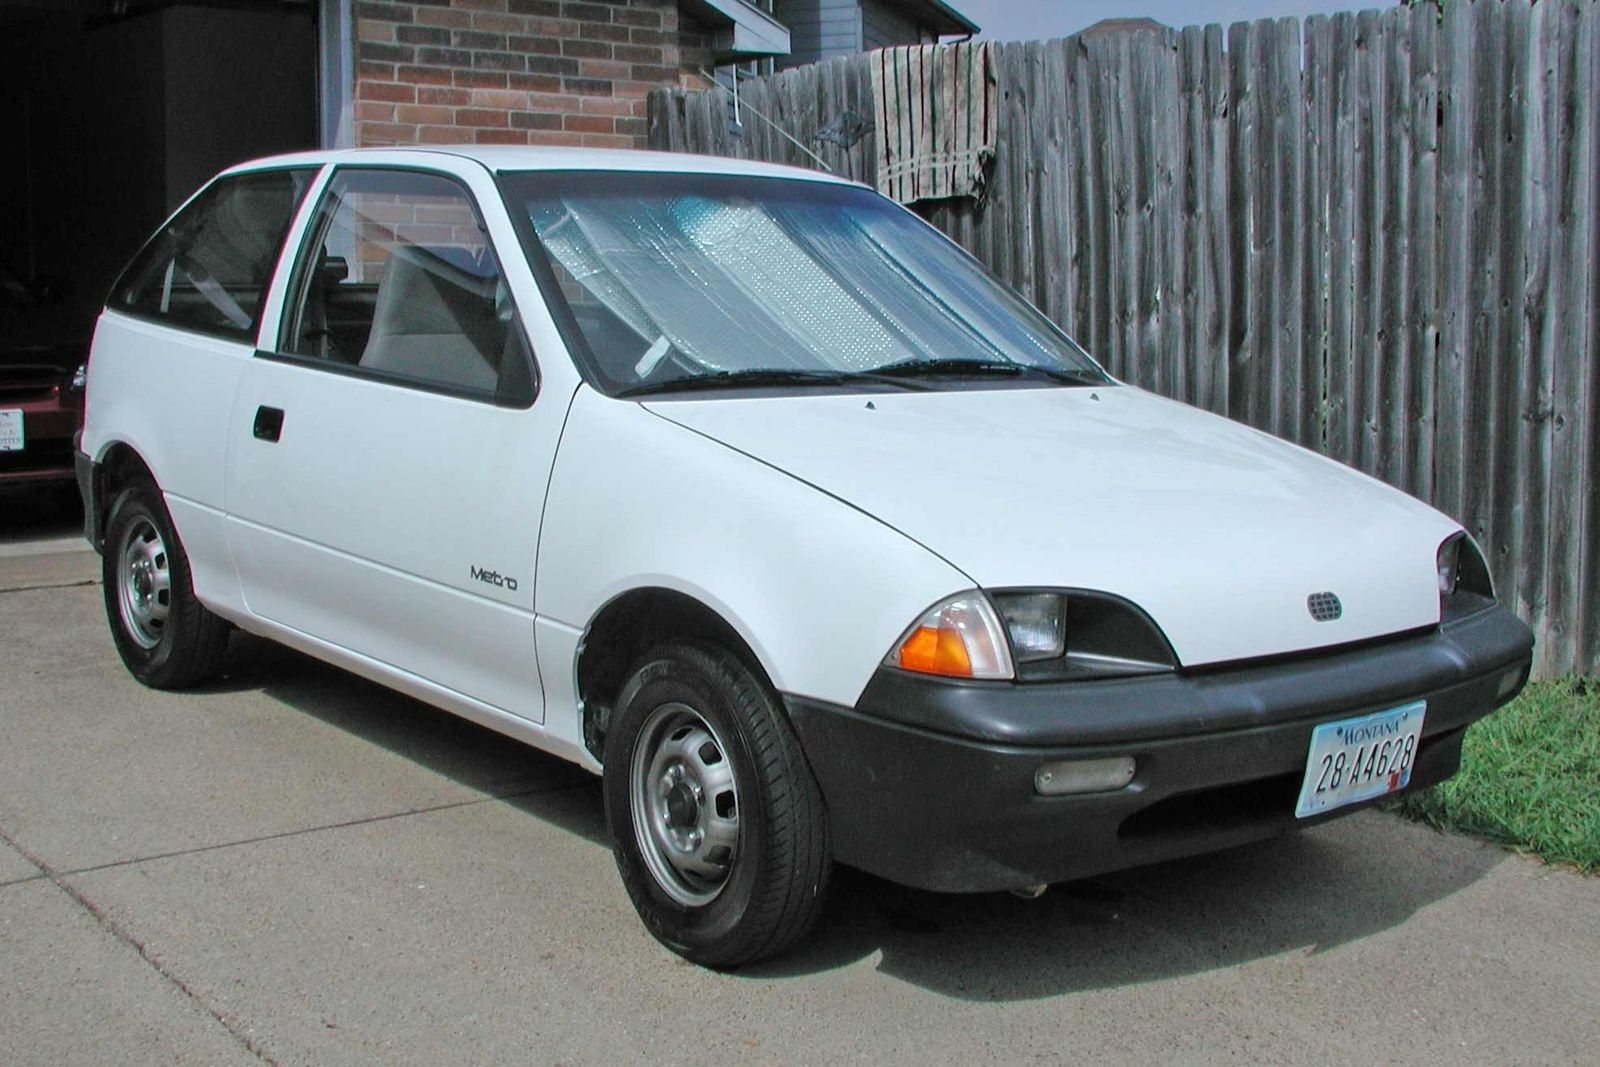 All Chevy 1998 chevy metro : Geo Metro | Cool Stuff | Pinterest | Cars, Custom cars and Dream cars